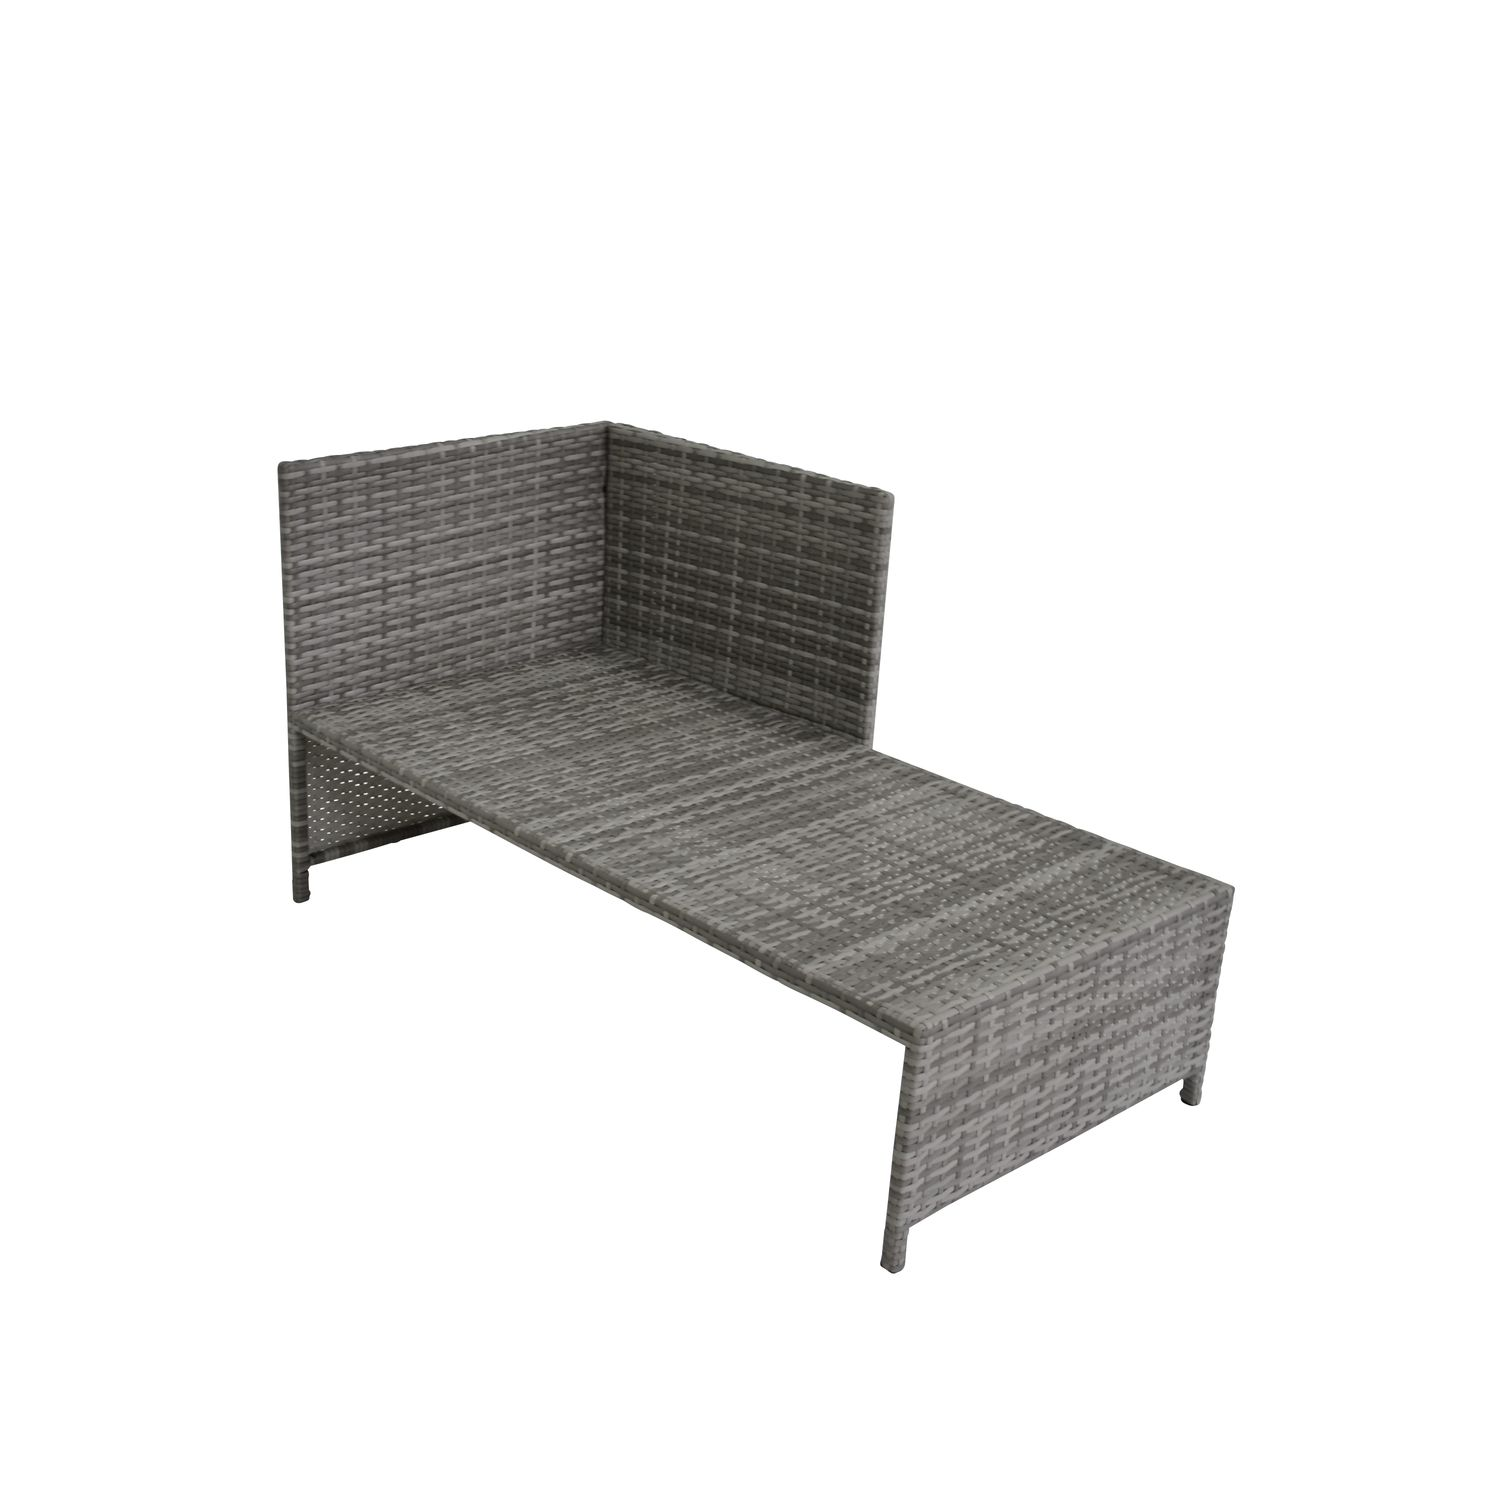 rattan lounge nevada grau online shop gonser. Black Bedroom Furniture Sets. Home Design Ideas